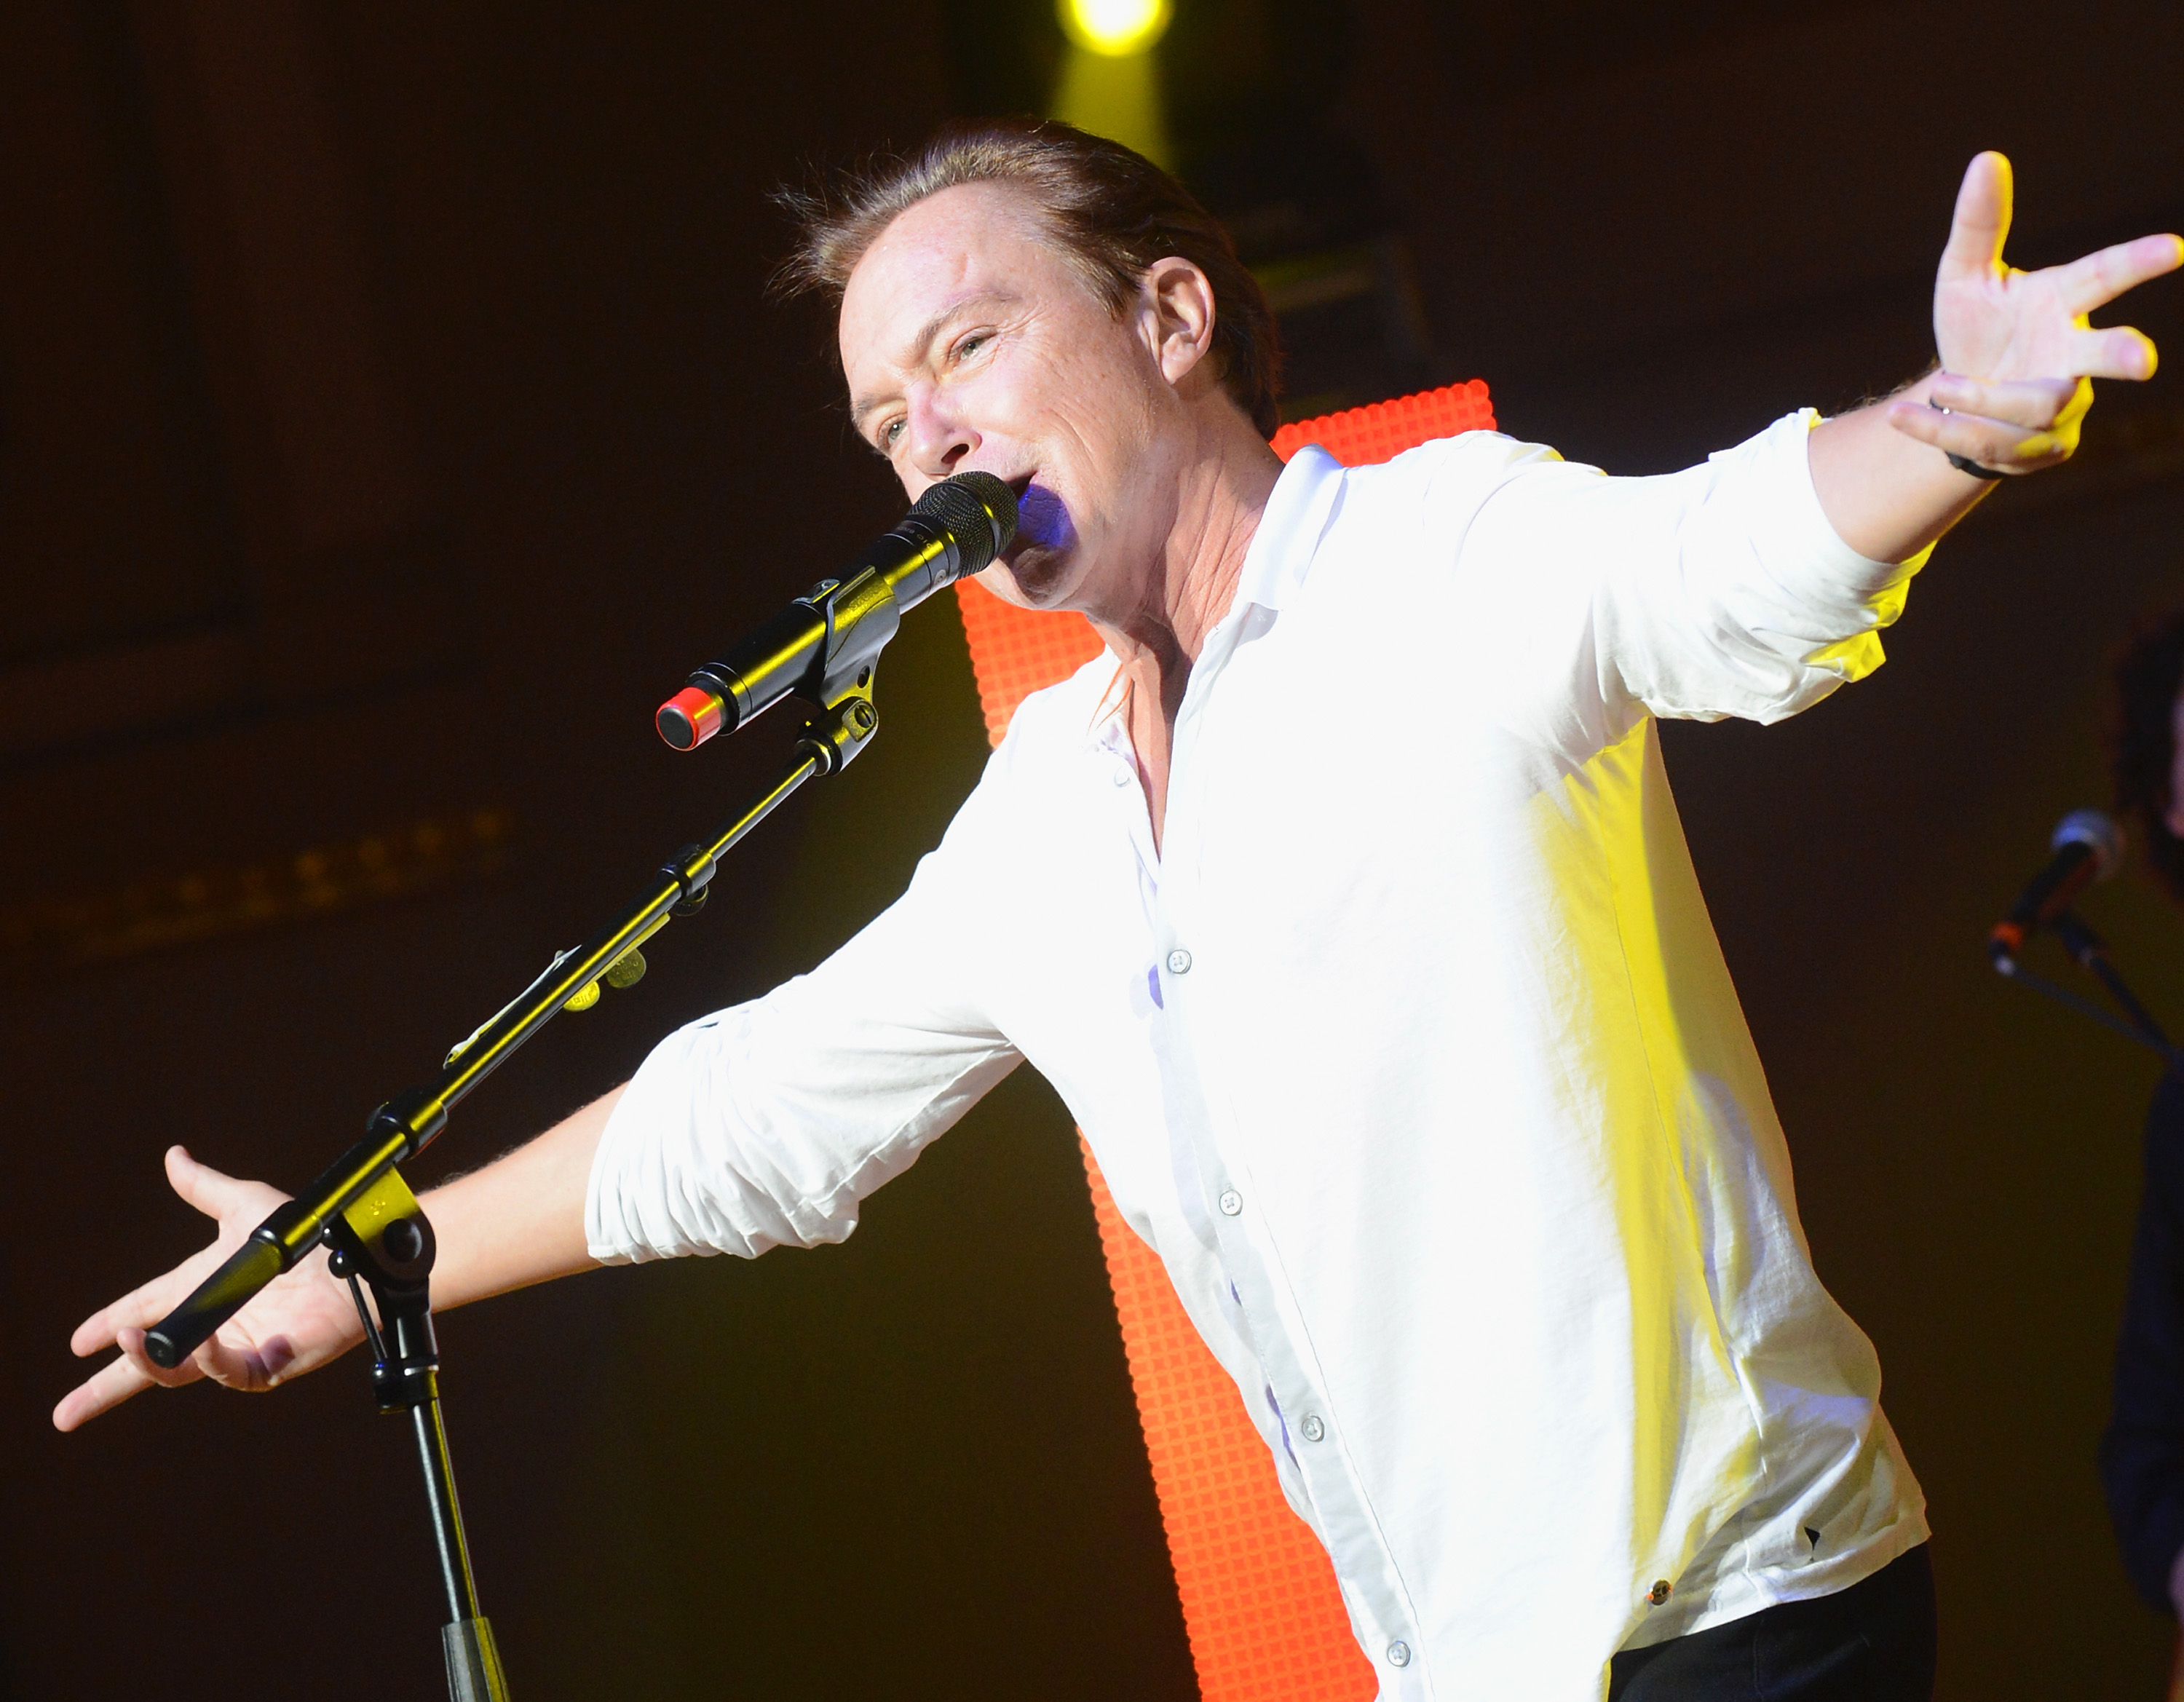 David Cassidy will perform at the Riviera Theatre. (Getty Images)